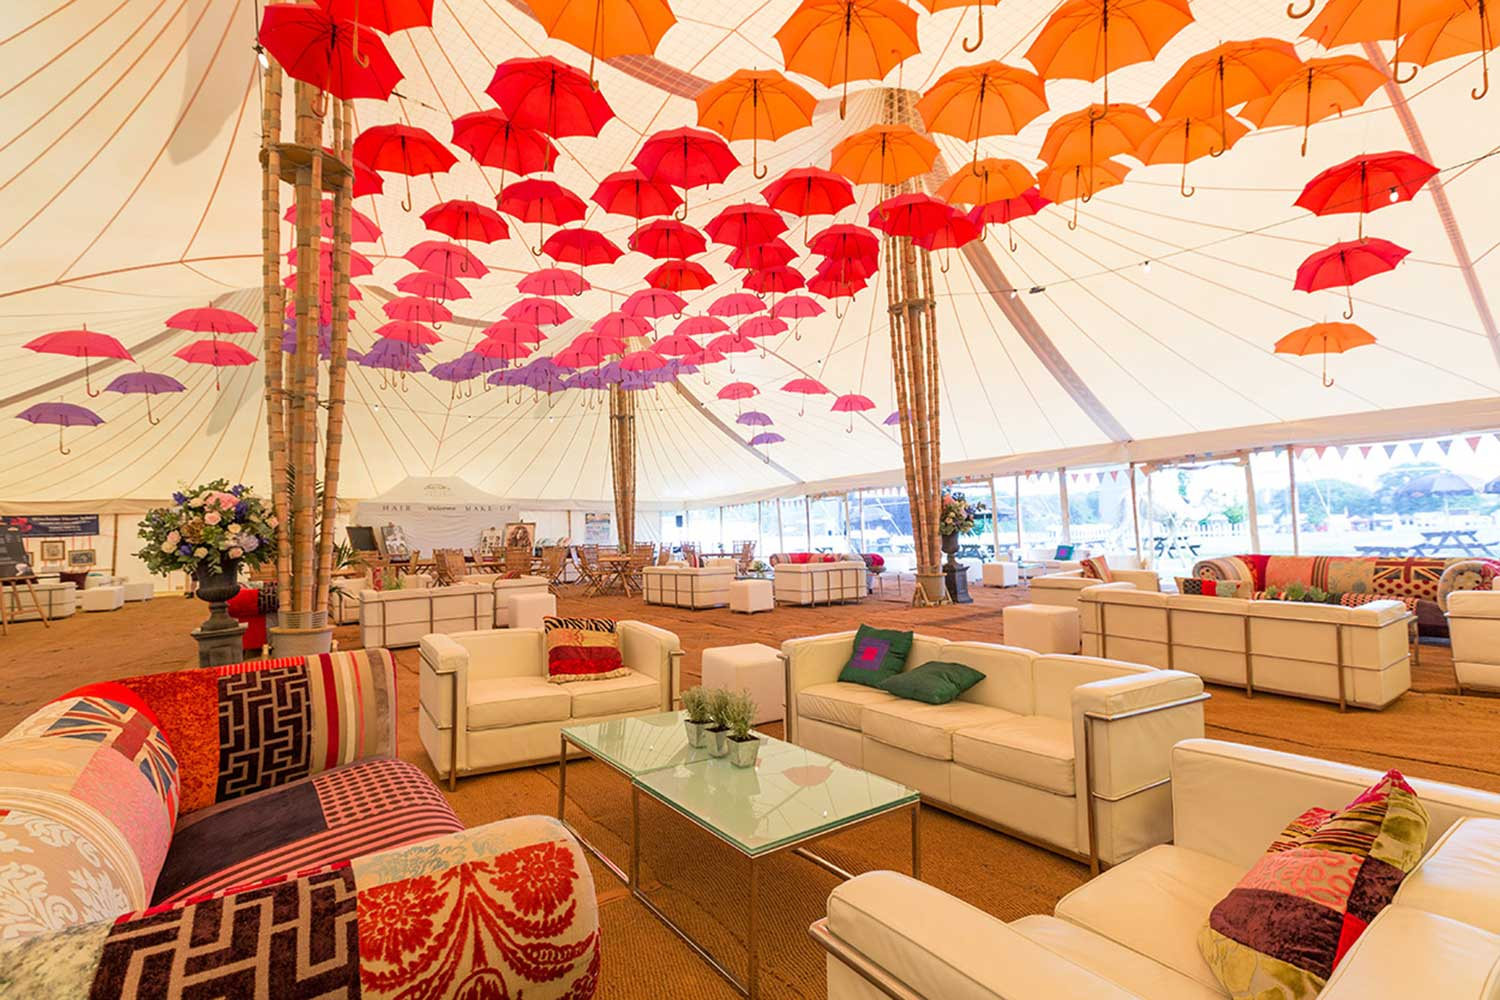 In conjunction with Square Mile, we compiled a list of the best VIP festival packages available.